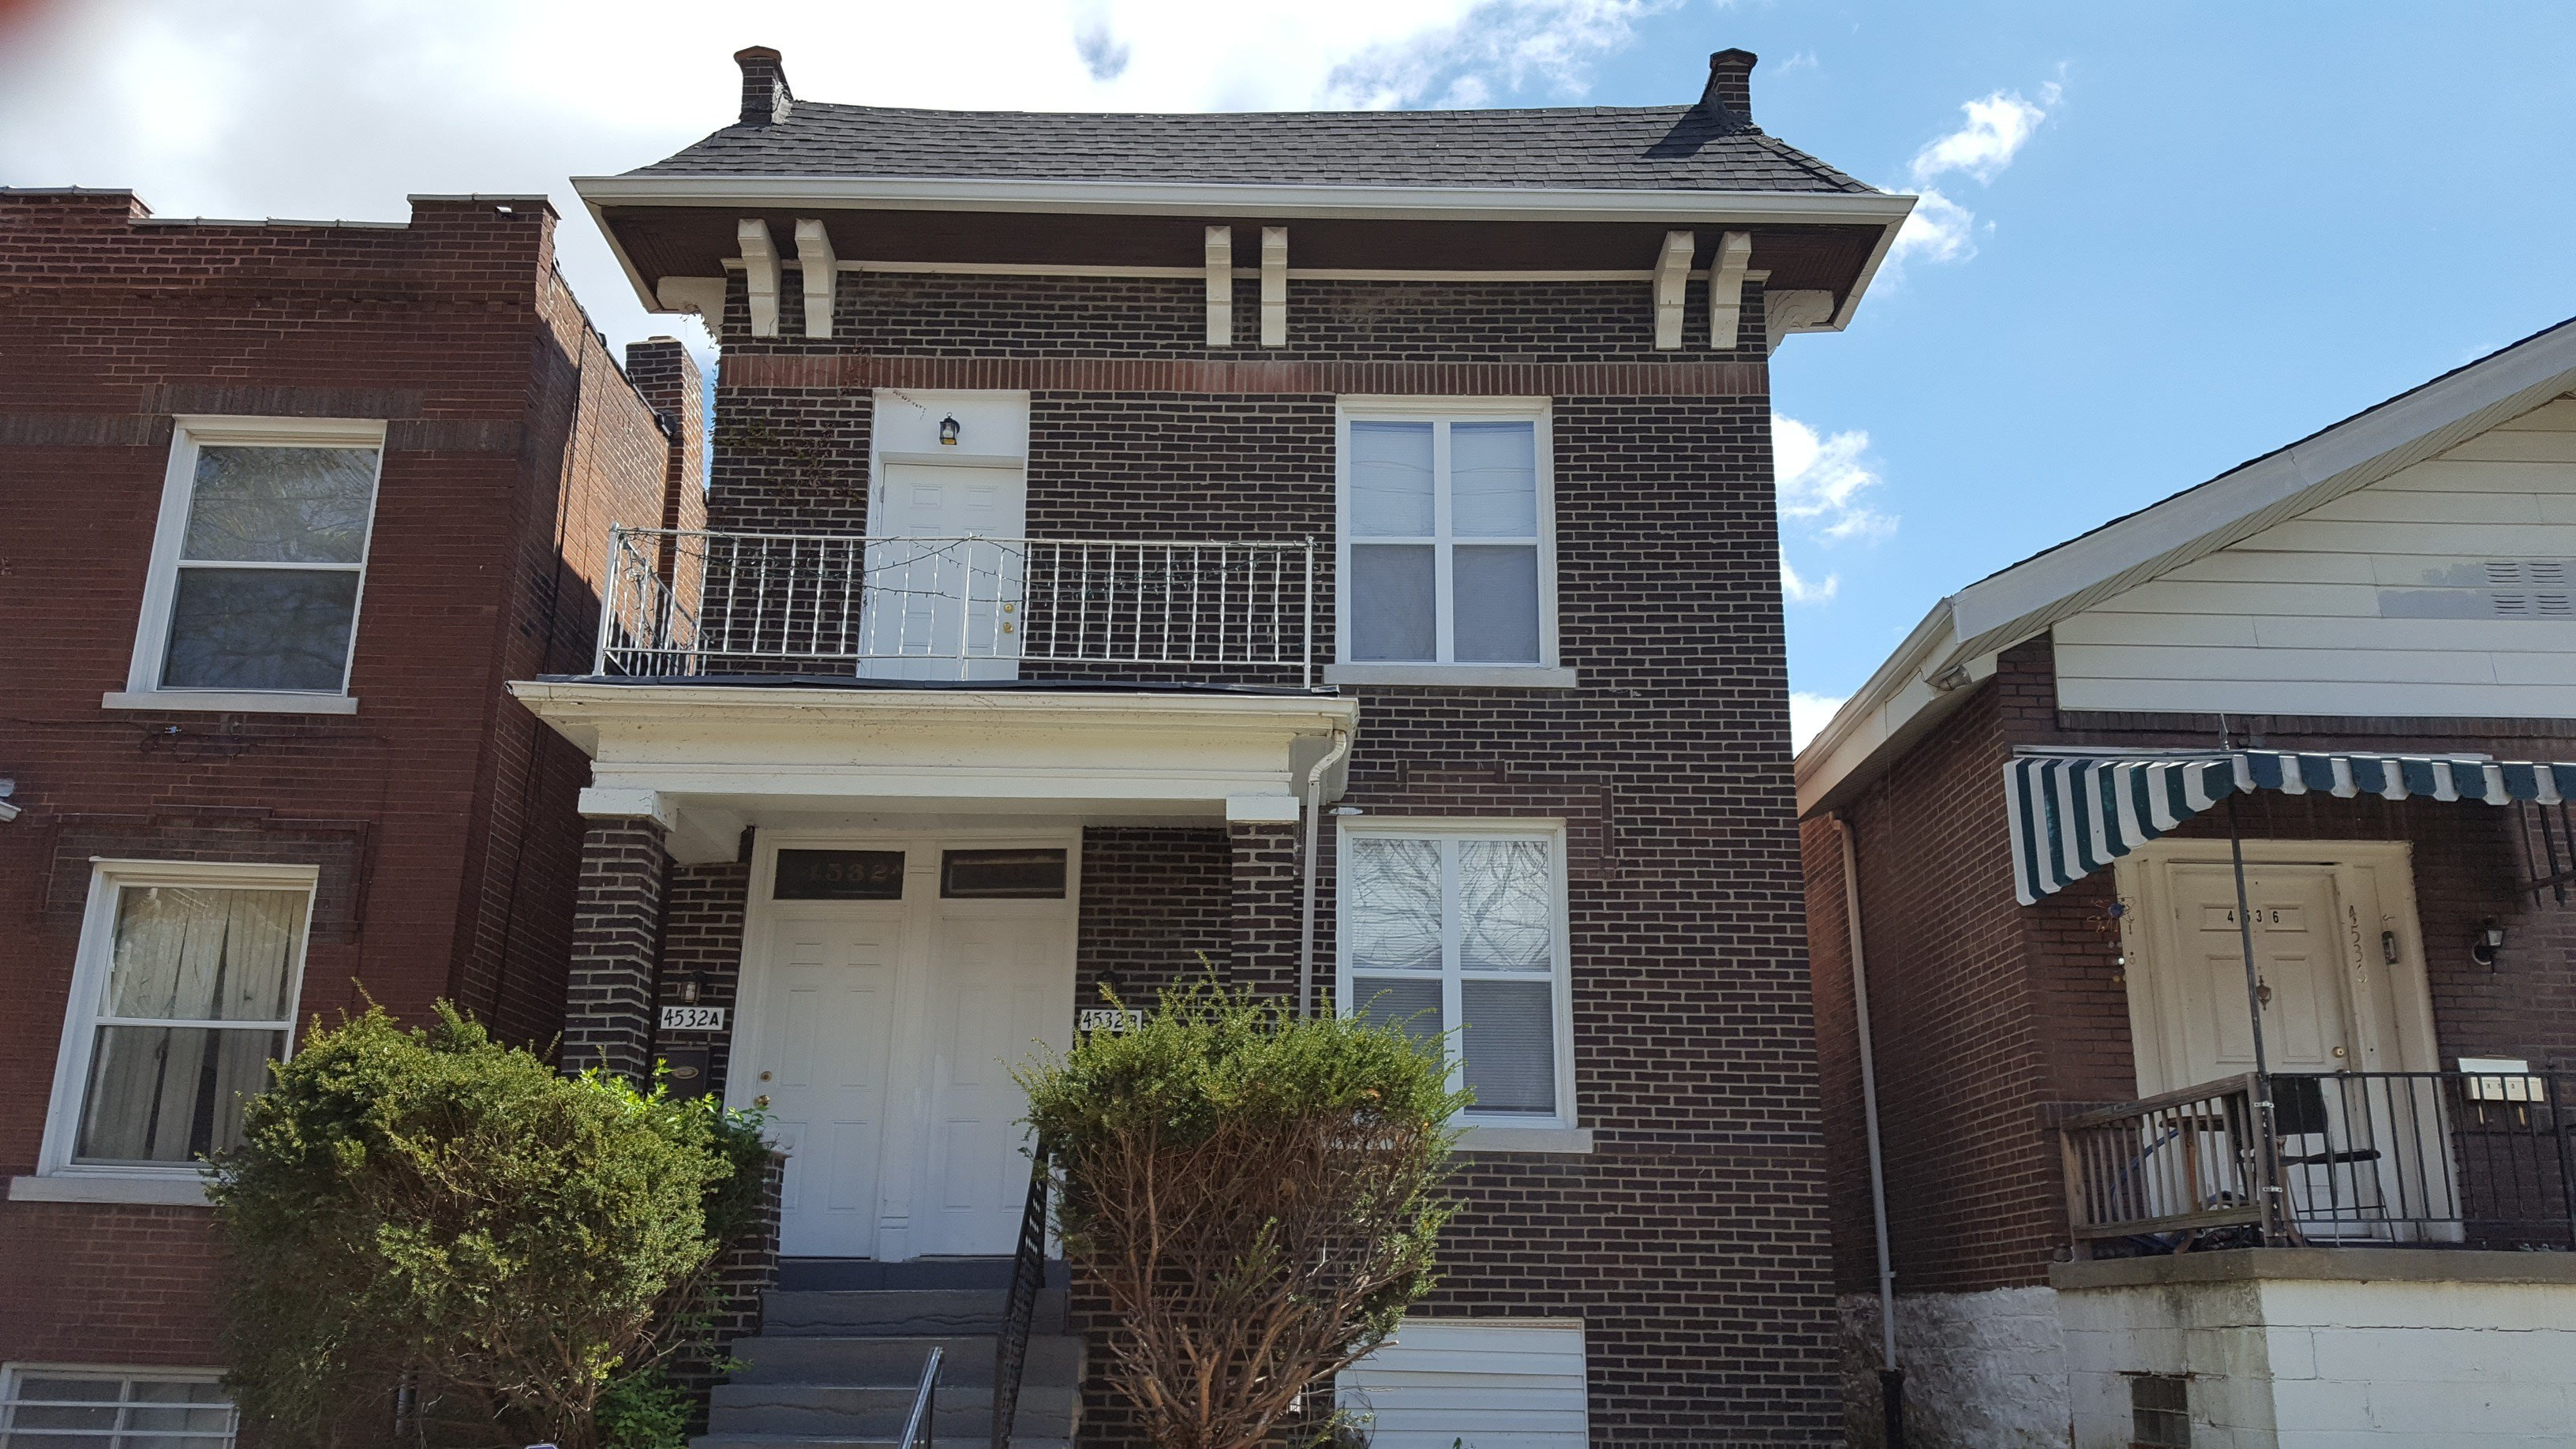 Best 4532 Pennsylvania Ave St Louis Mo 63118 1 Bedroom Apartment For Rent For 525 Month Zumper With Pictures